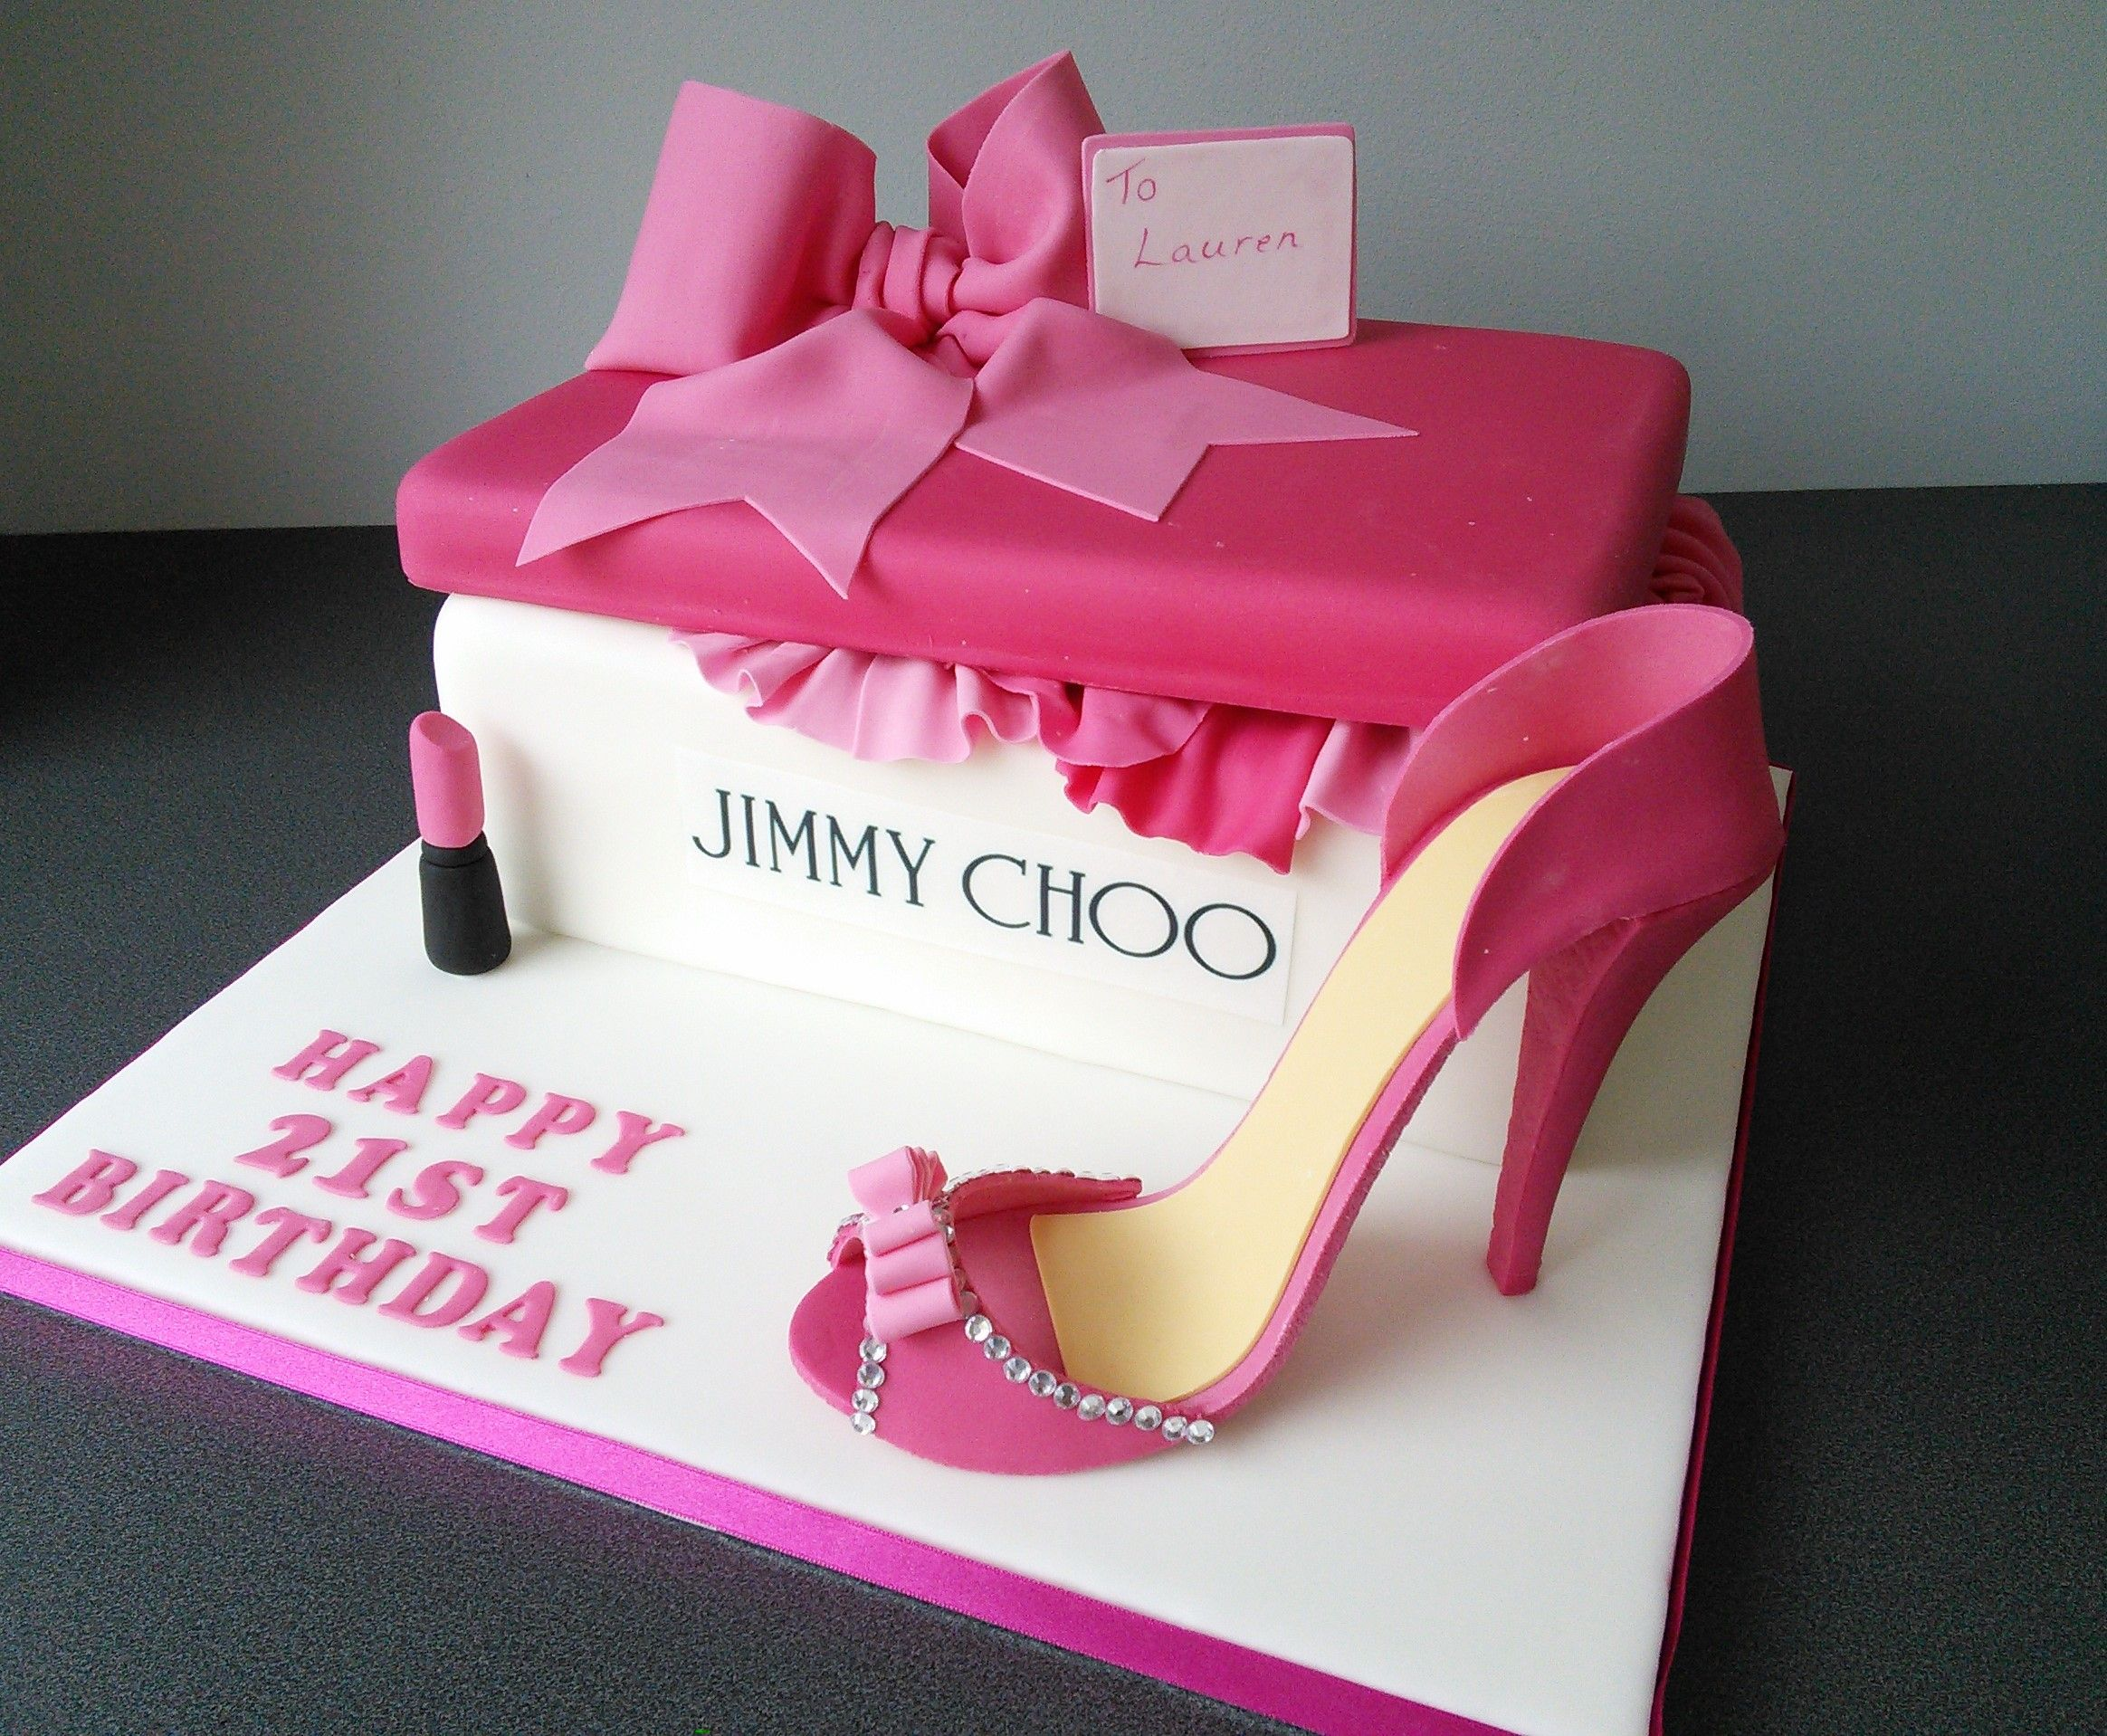 Jimmy Choo Shoe Box And Pink Stiletto 21st Birthday Cake 40th